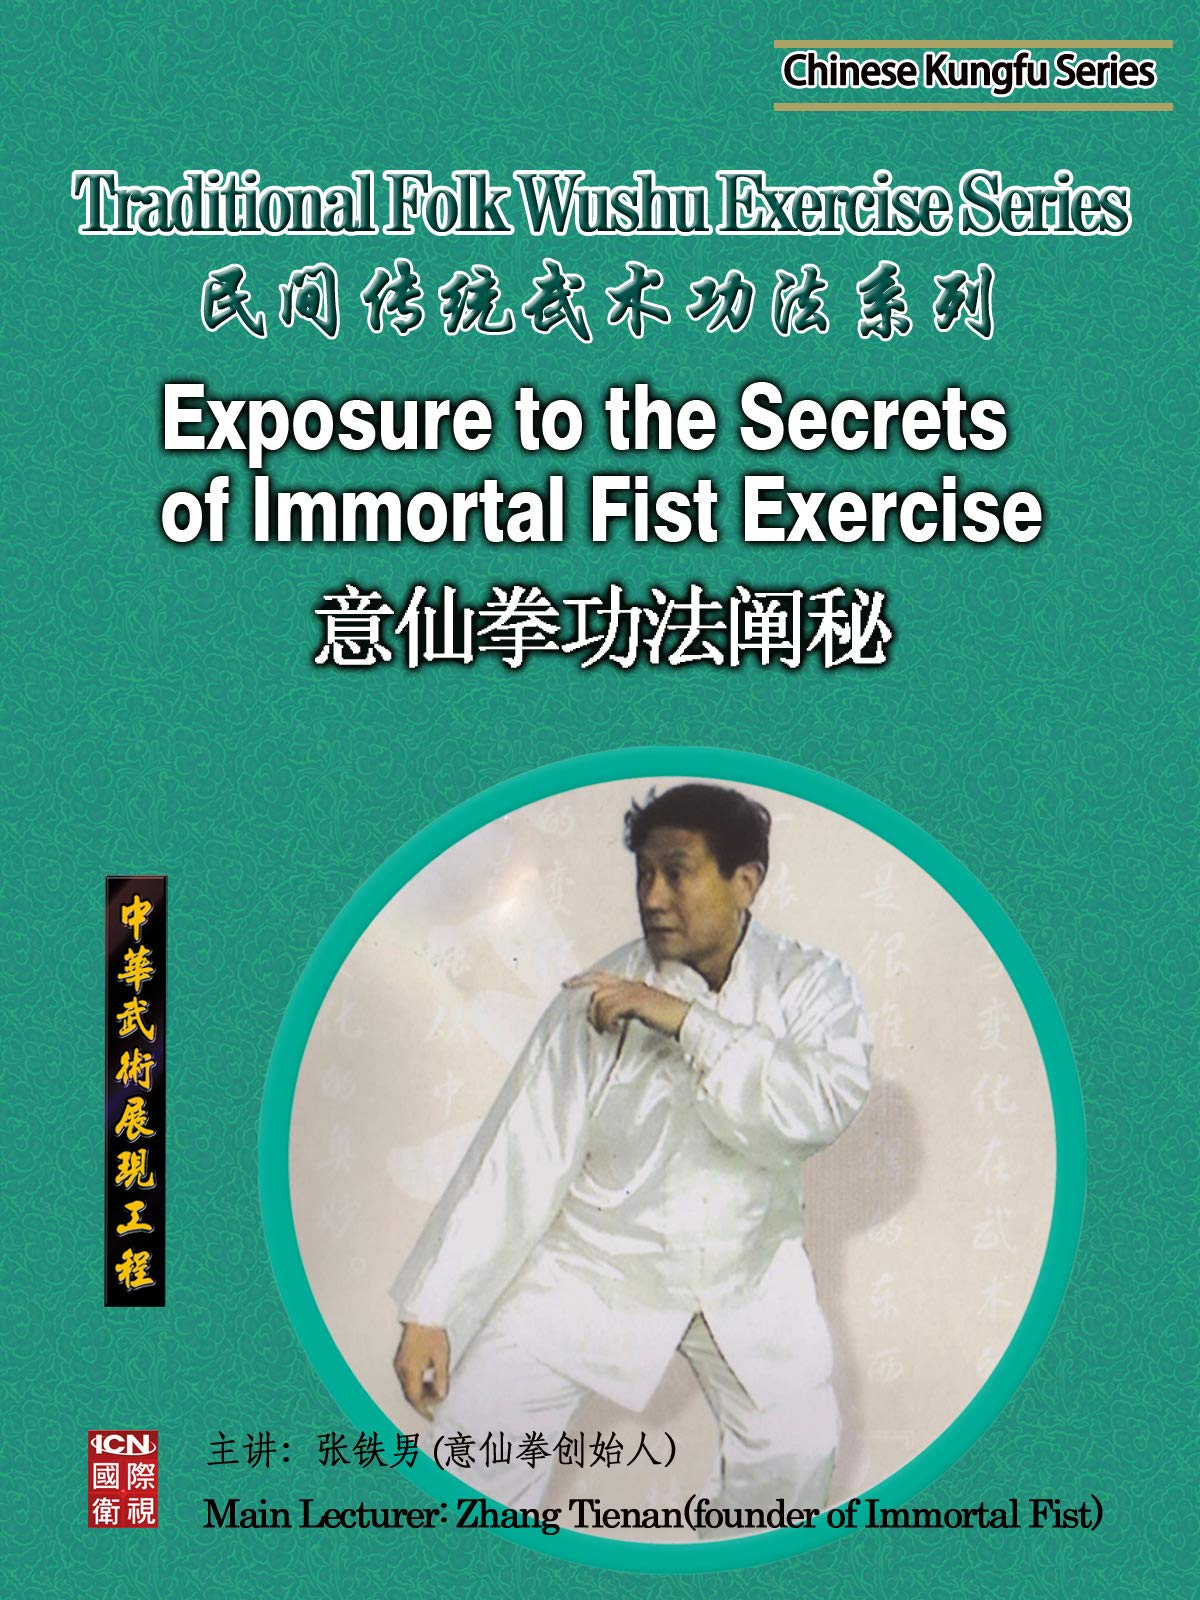 Traditional Folk Wushu Exercise Series -Exposure to the Secrets of Immortal Fist Exercise(Main Lecturer: Zhang Tienan) on Amazon Prime Video UK